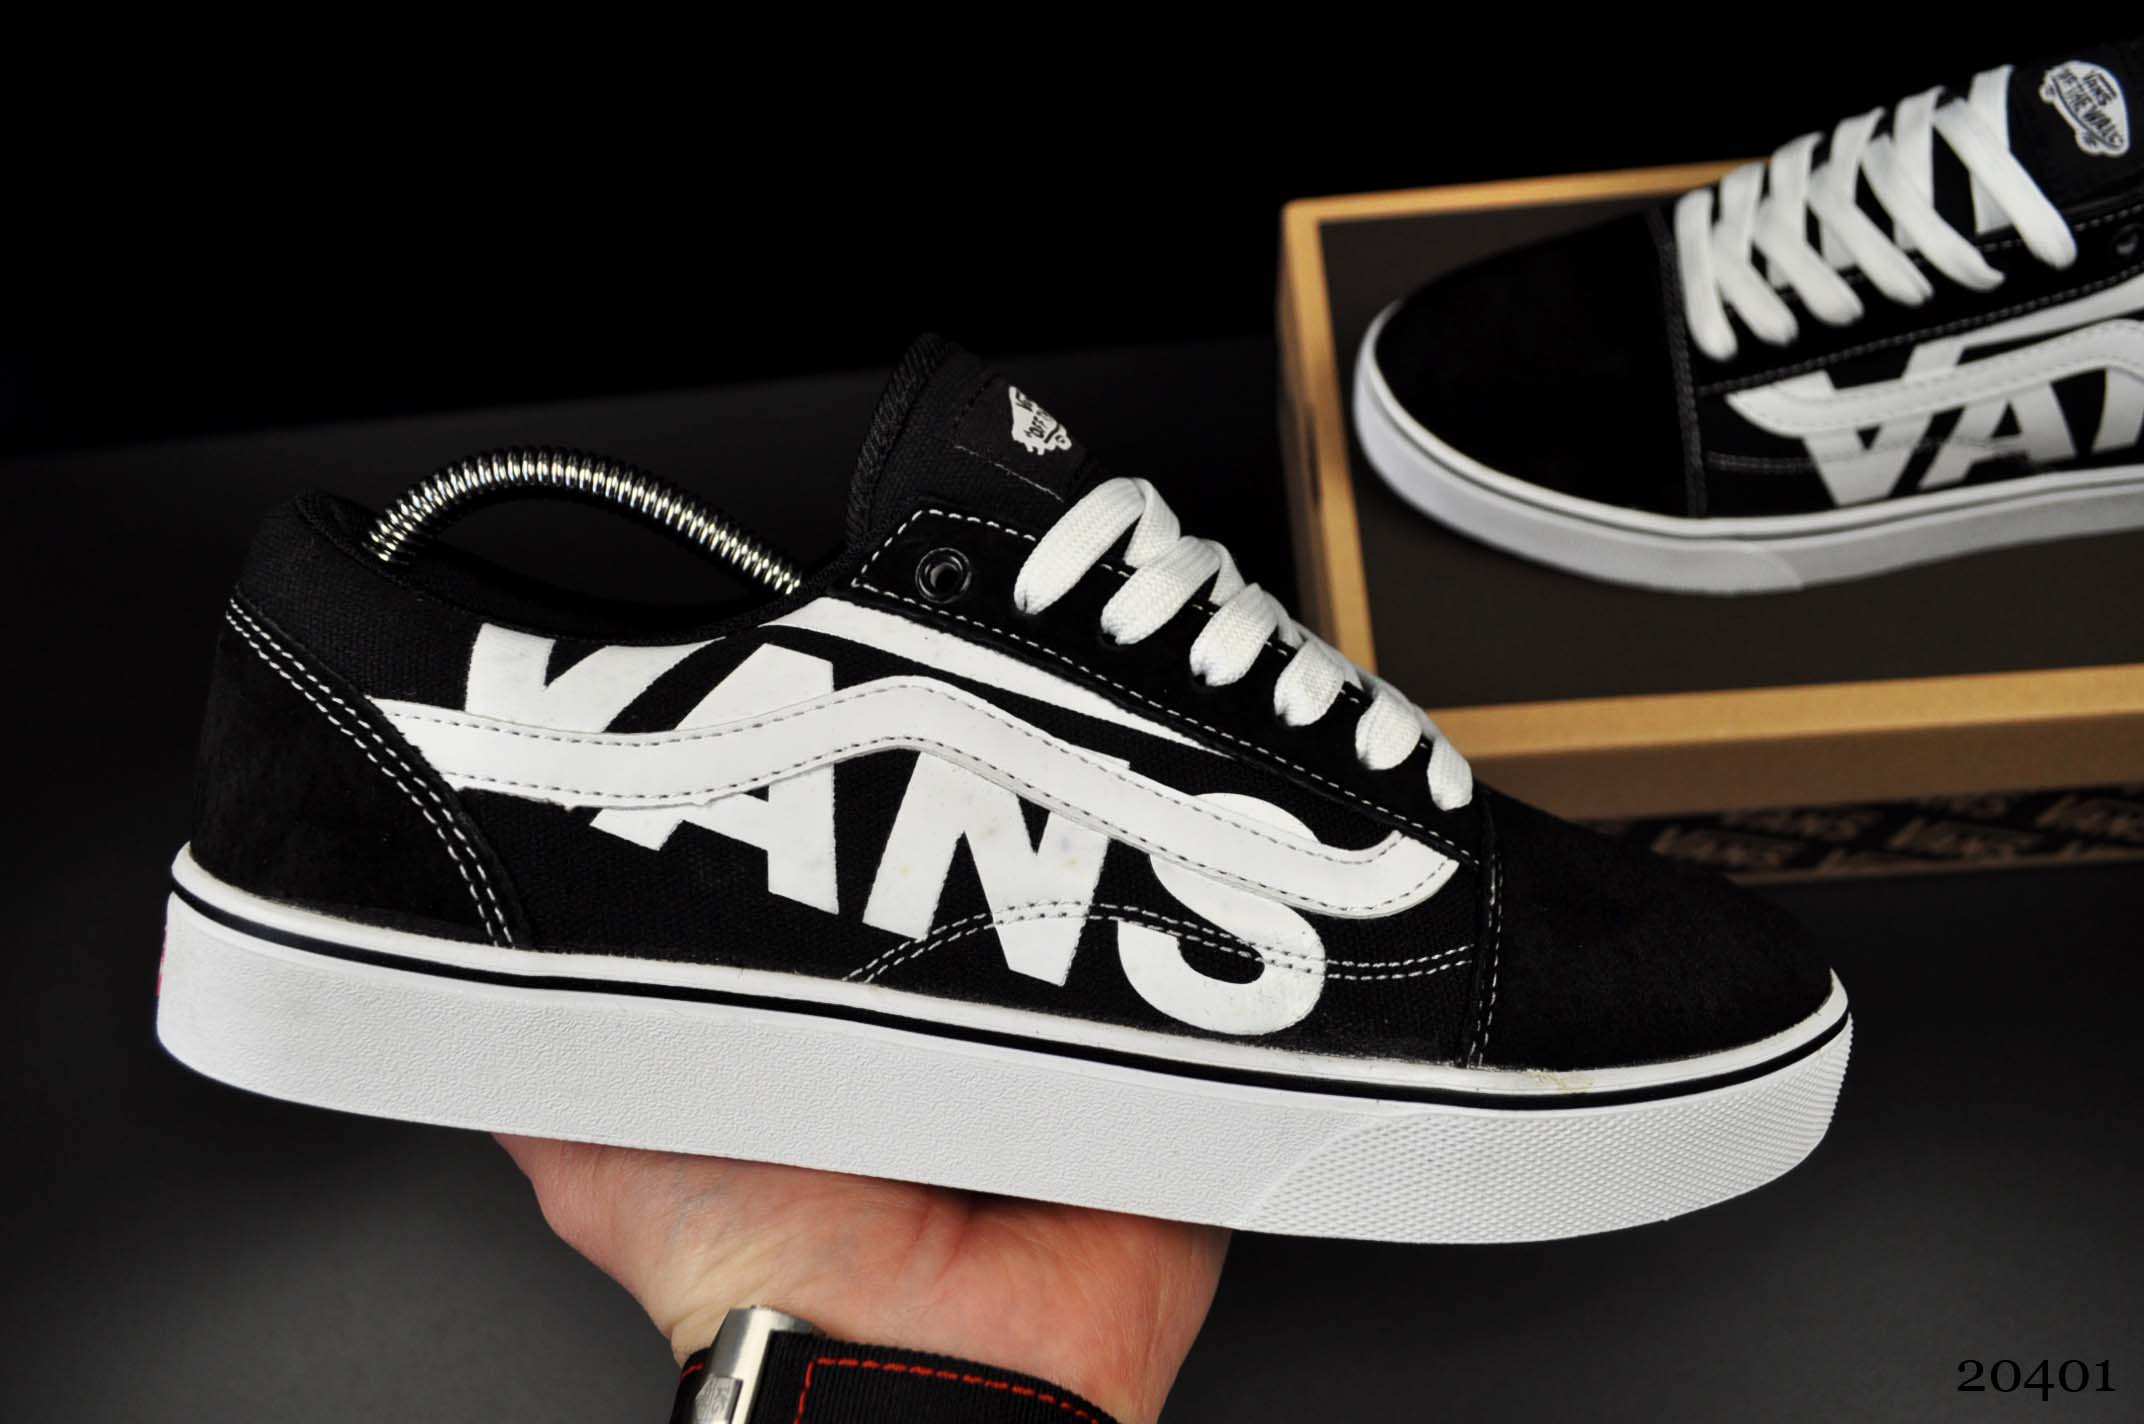 bc253fba4 кеды Vans old Skool арт.20401 - krossovkishop.com.ua